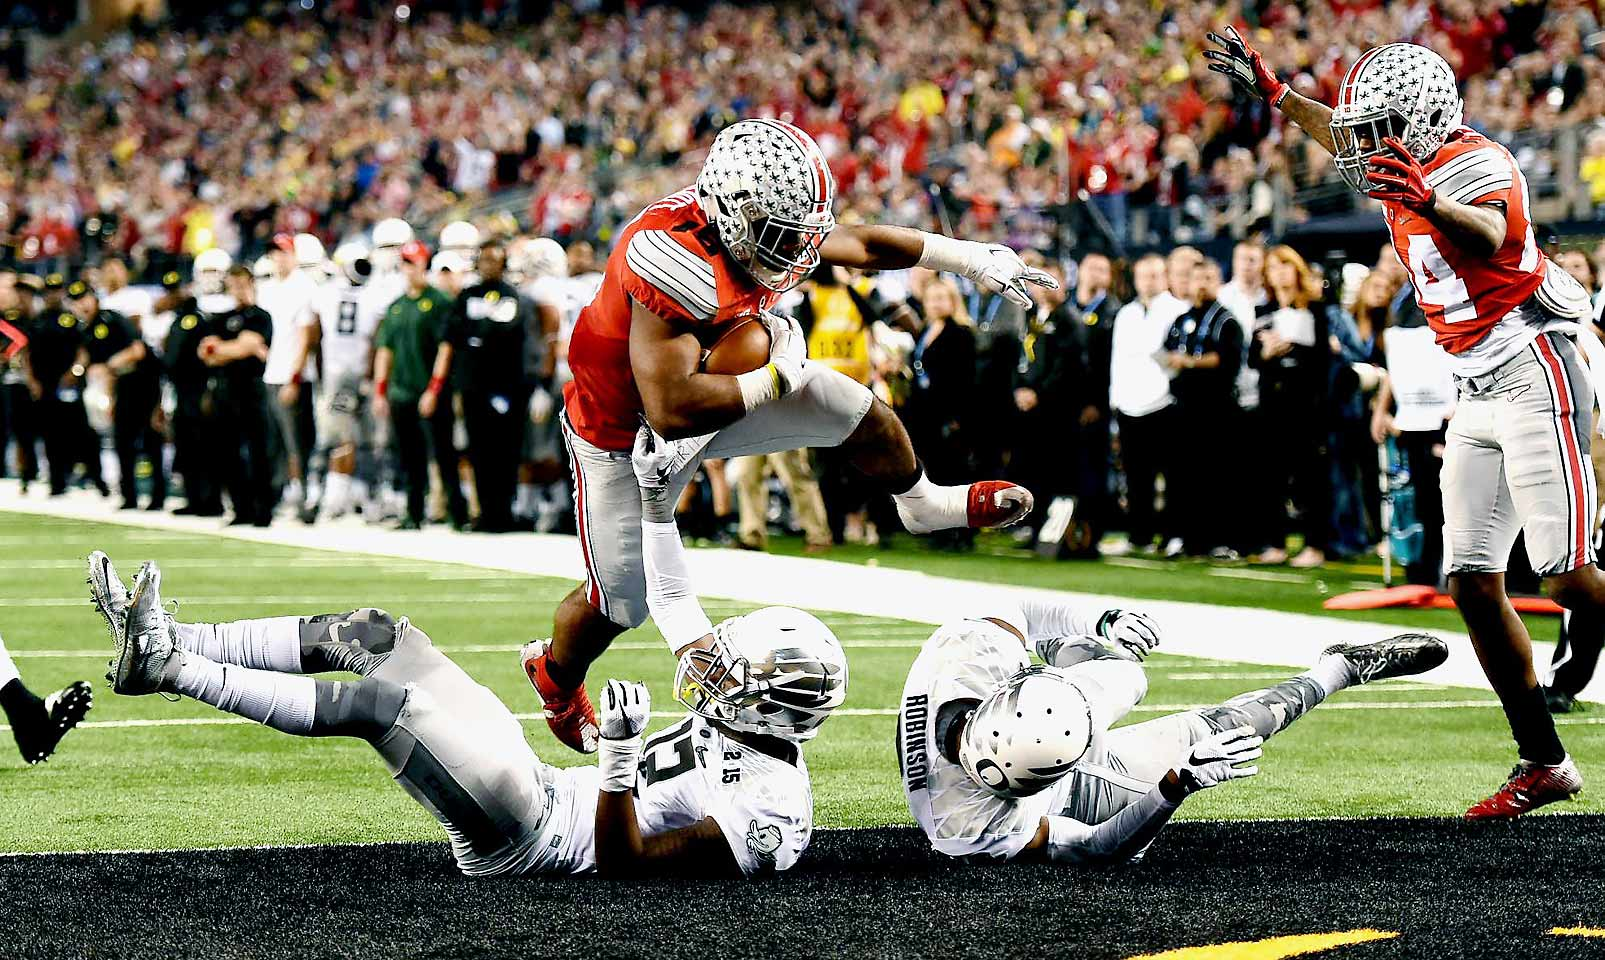 Elliott was last seen bowling over Oregon defenders in a dominant performance in Ohio State's national championship win. The rising junior ran for over 200 yards in each of the Buckeyes' last three games of 2014, and he could reach 2,000 yards this year if Meyer goes to him early and often.